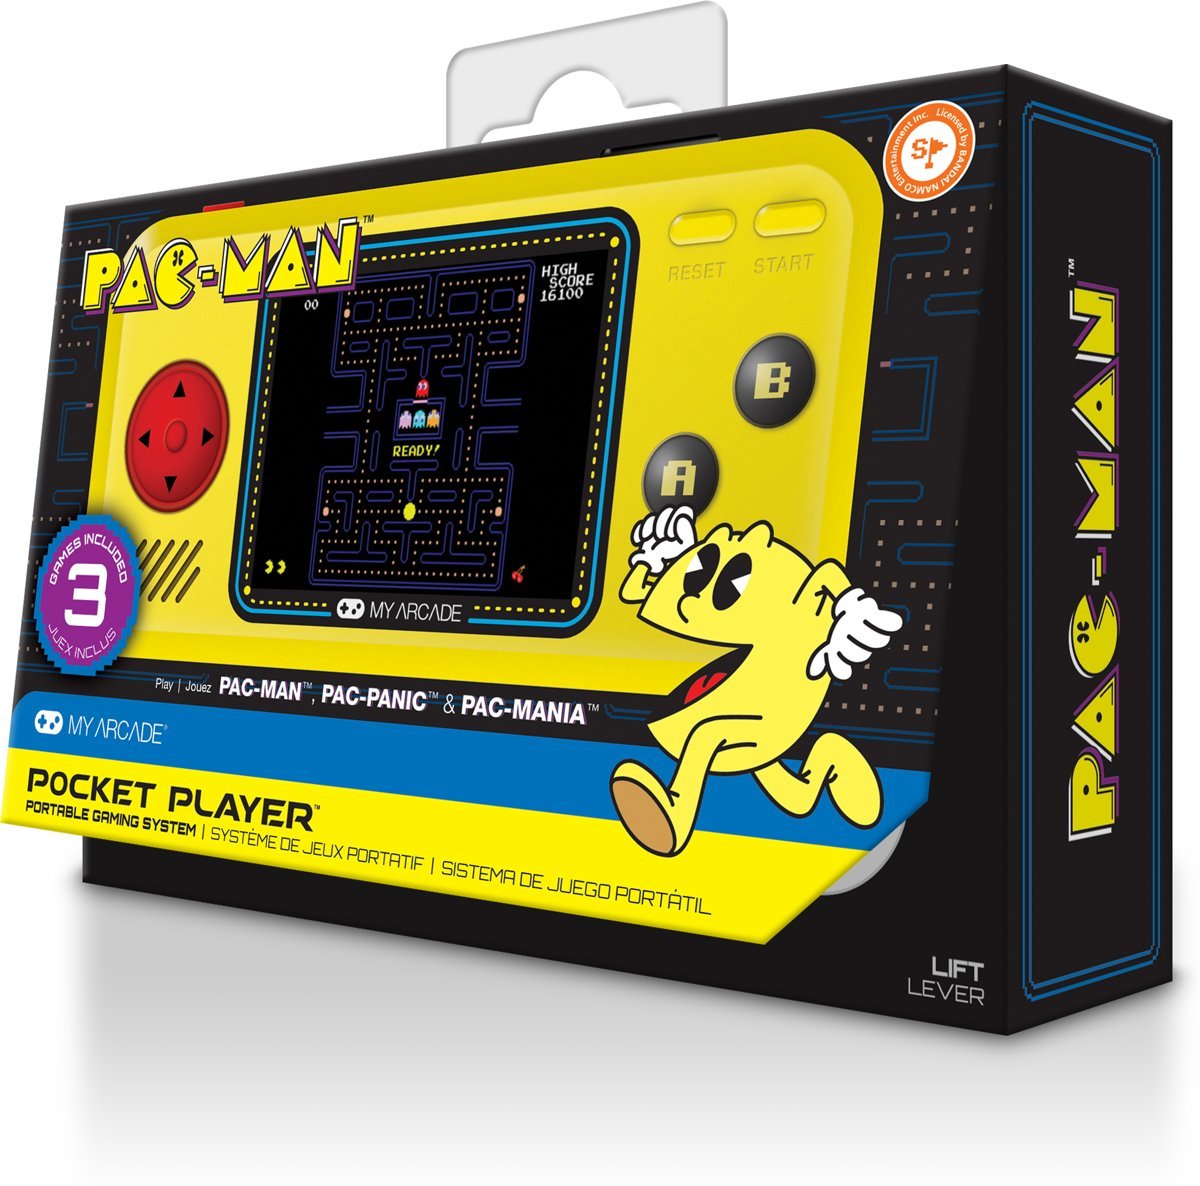 PacMan 4 titles Handheld Console (Retro)